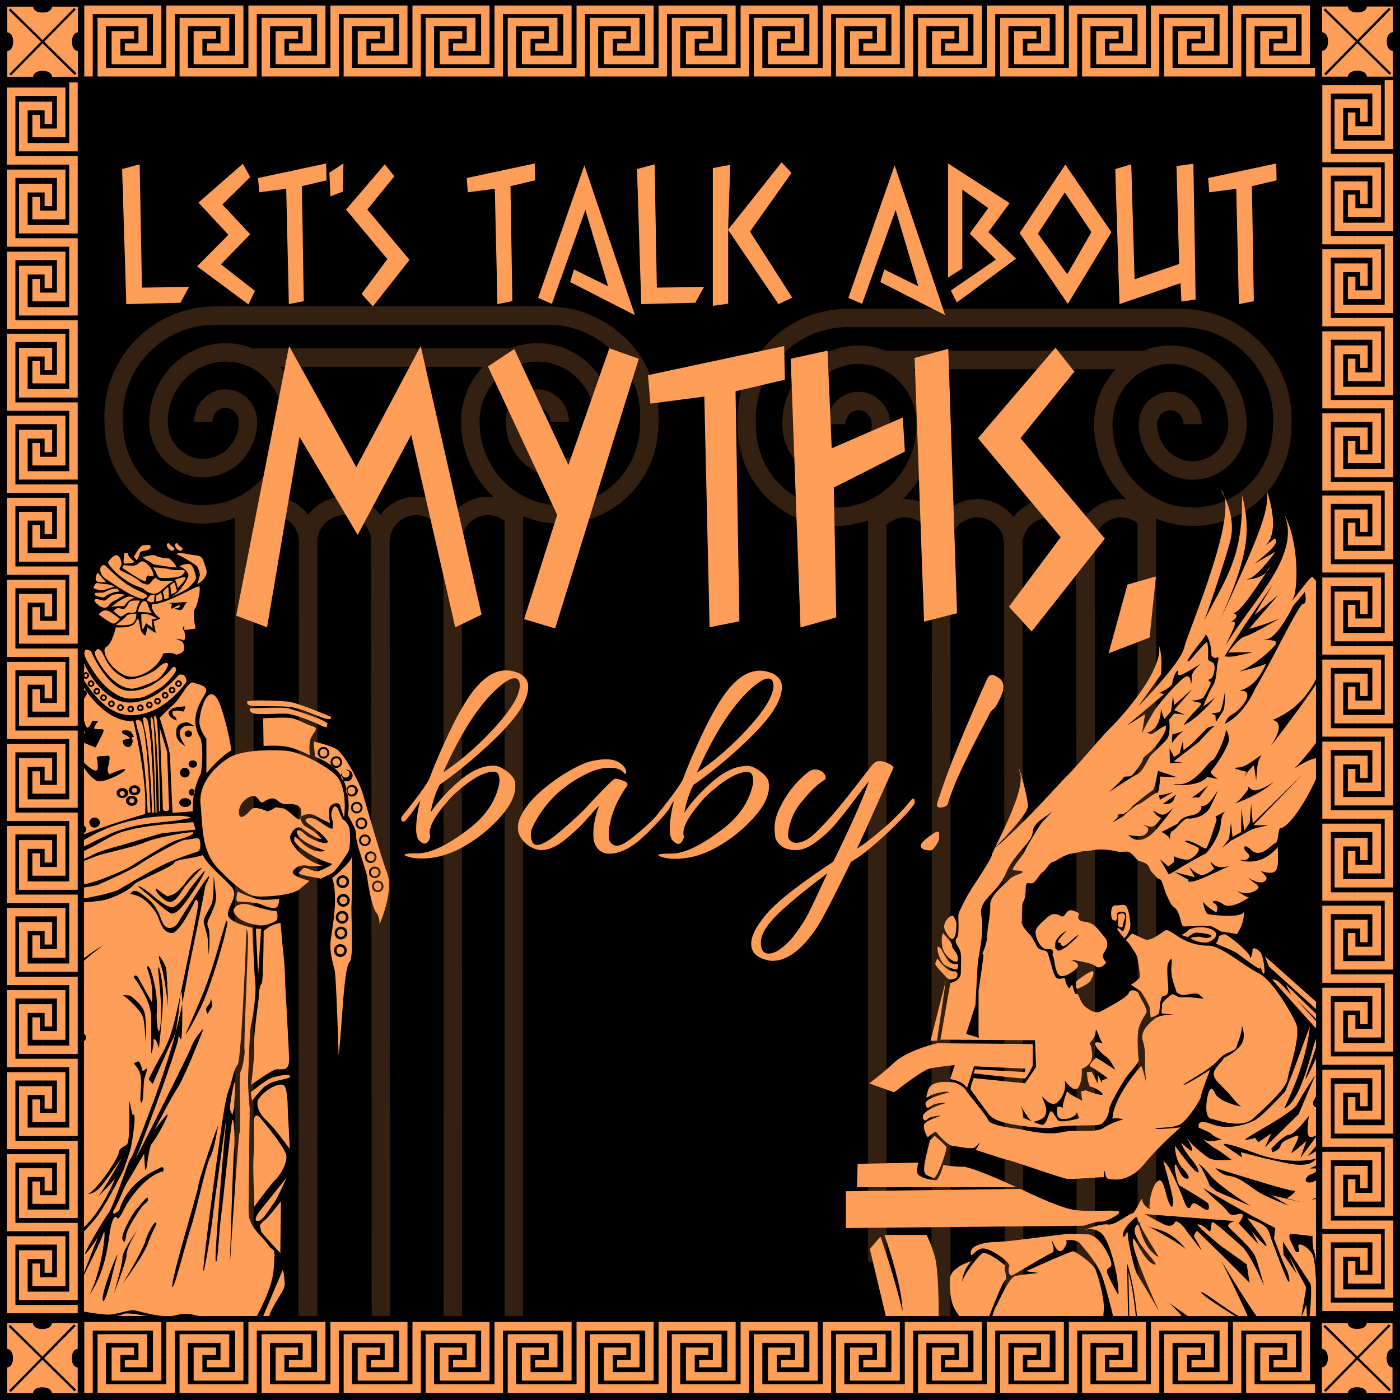 Lets talk about myths, baby! - The Maine Campus